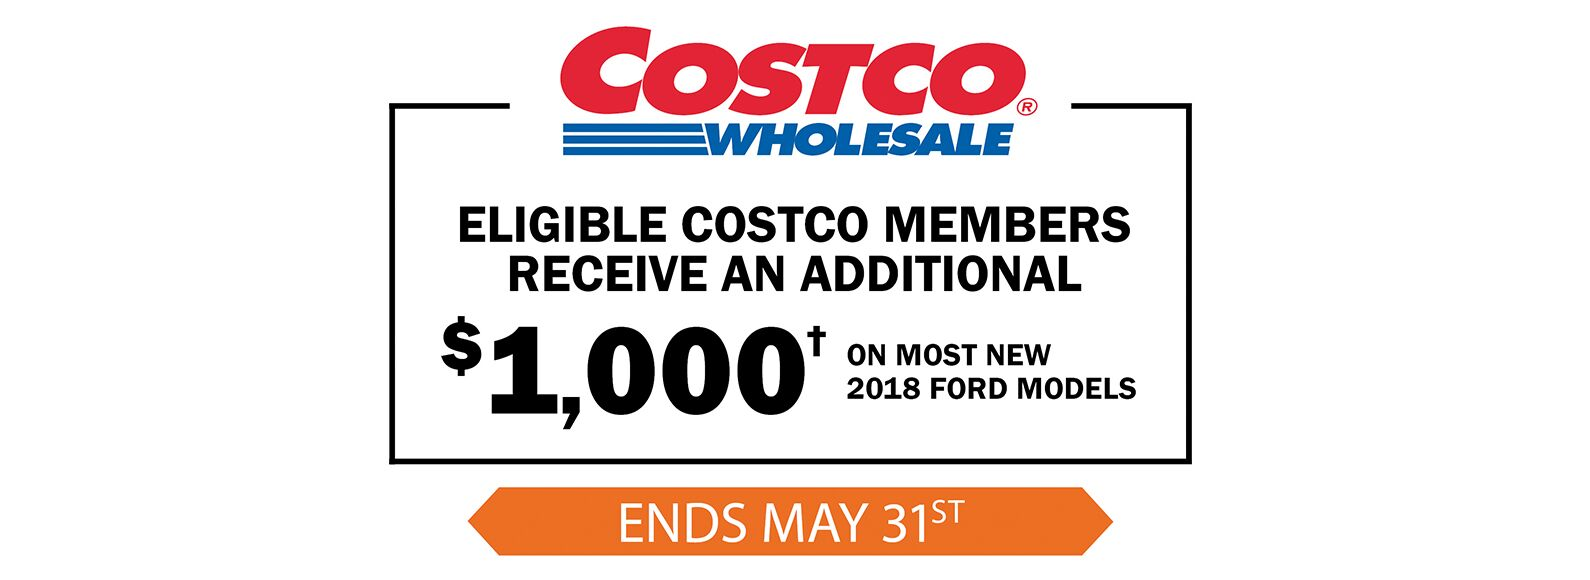 Costco Discount